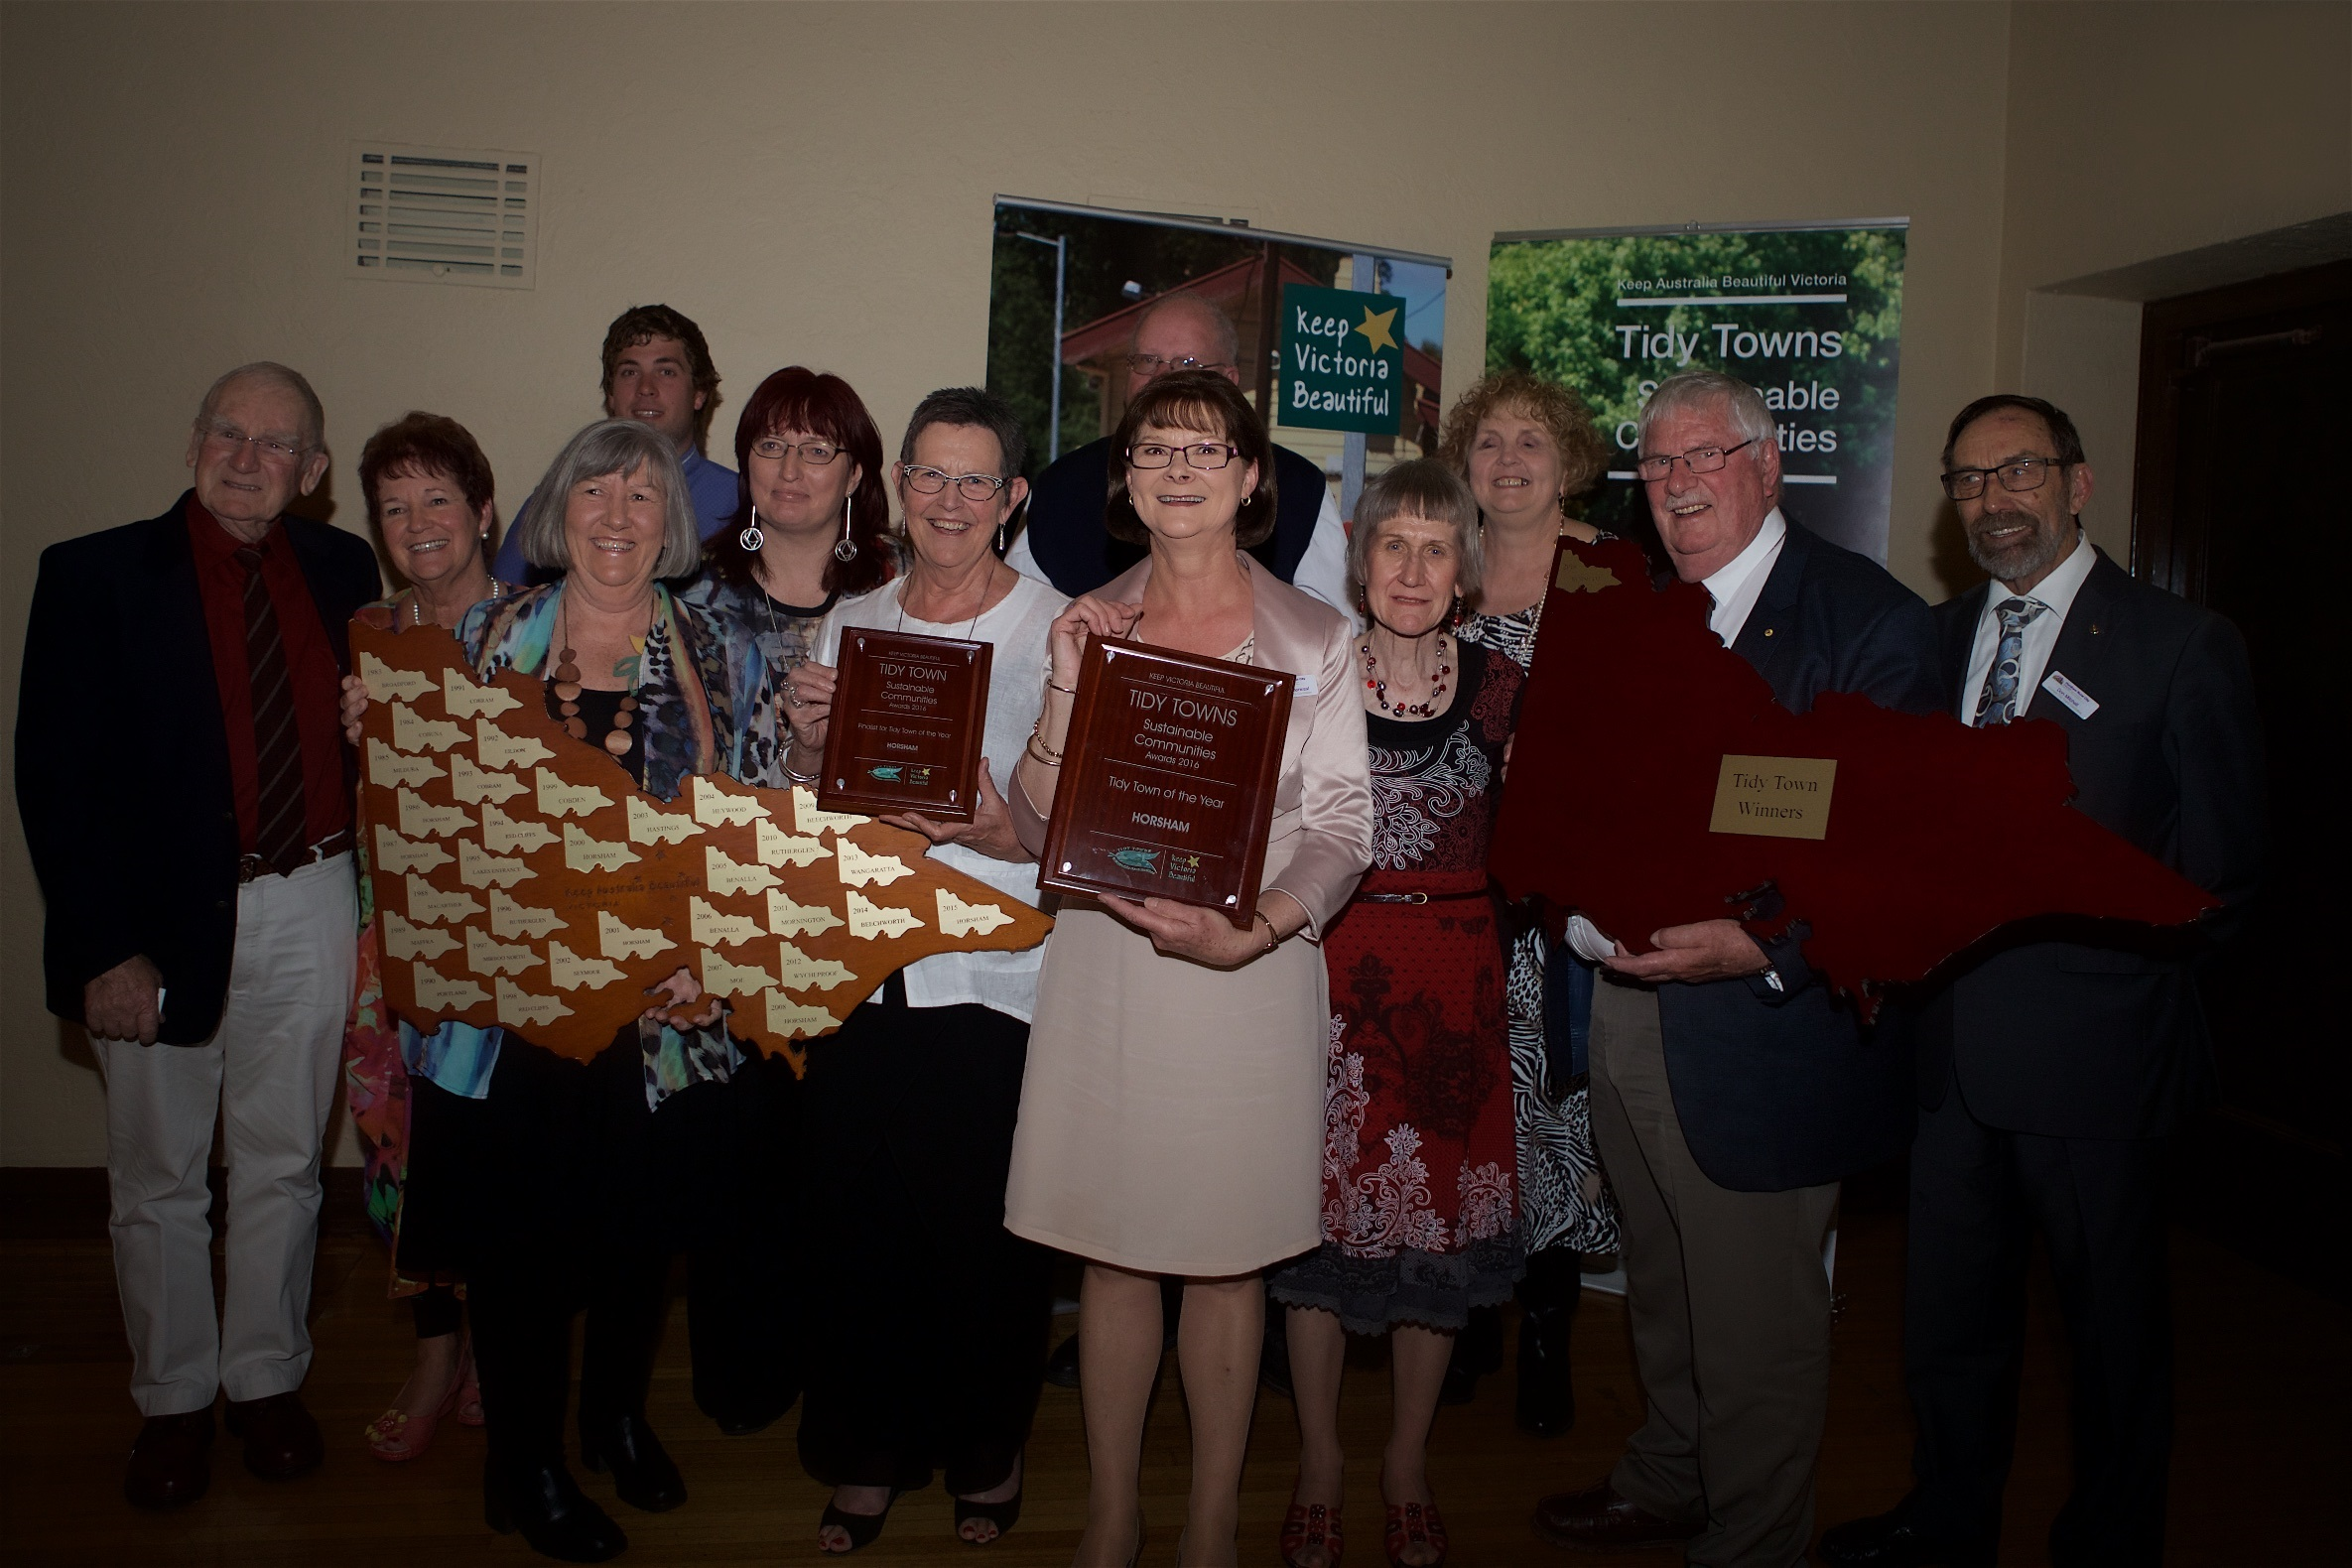 The 2016 Tidy Towns